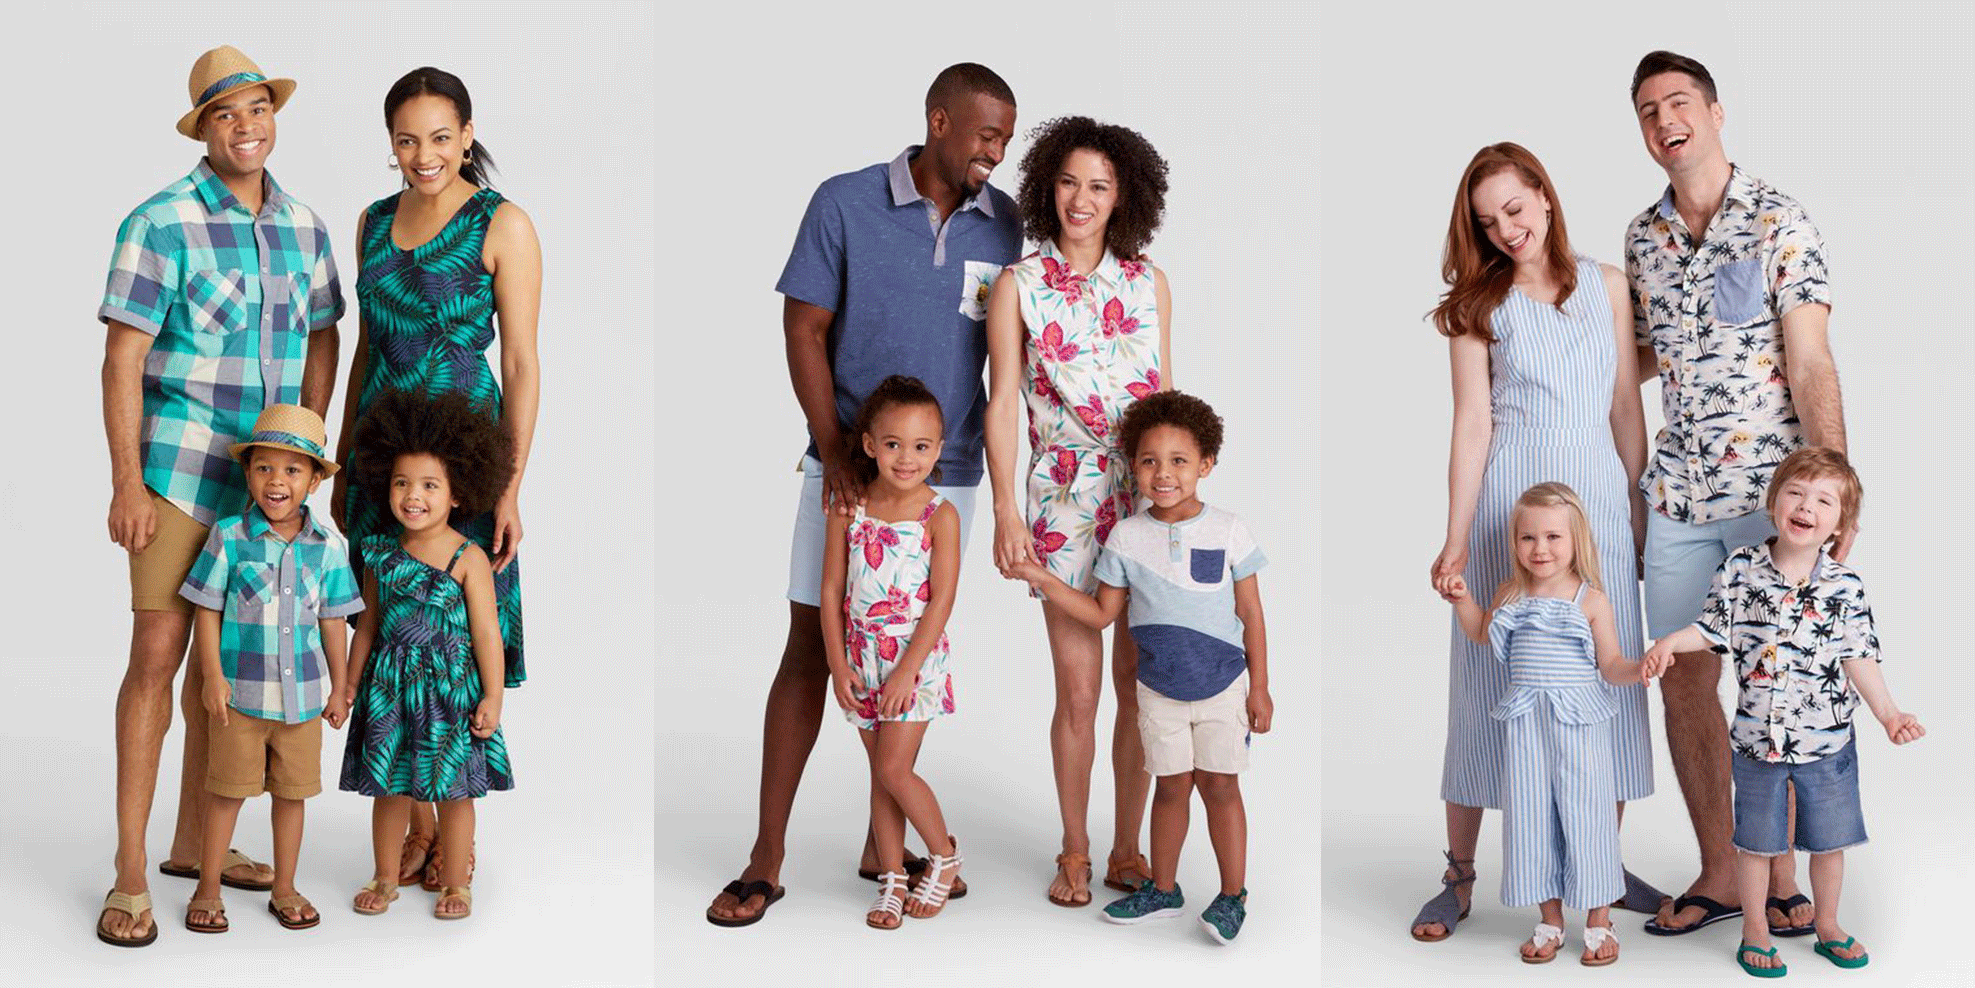 84f396f715 Target Now Sells Matching Family Outfits That Are Actually So Cute